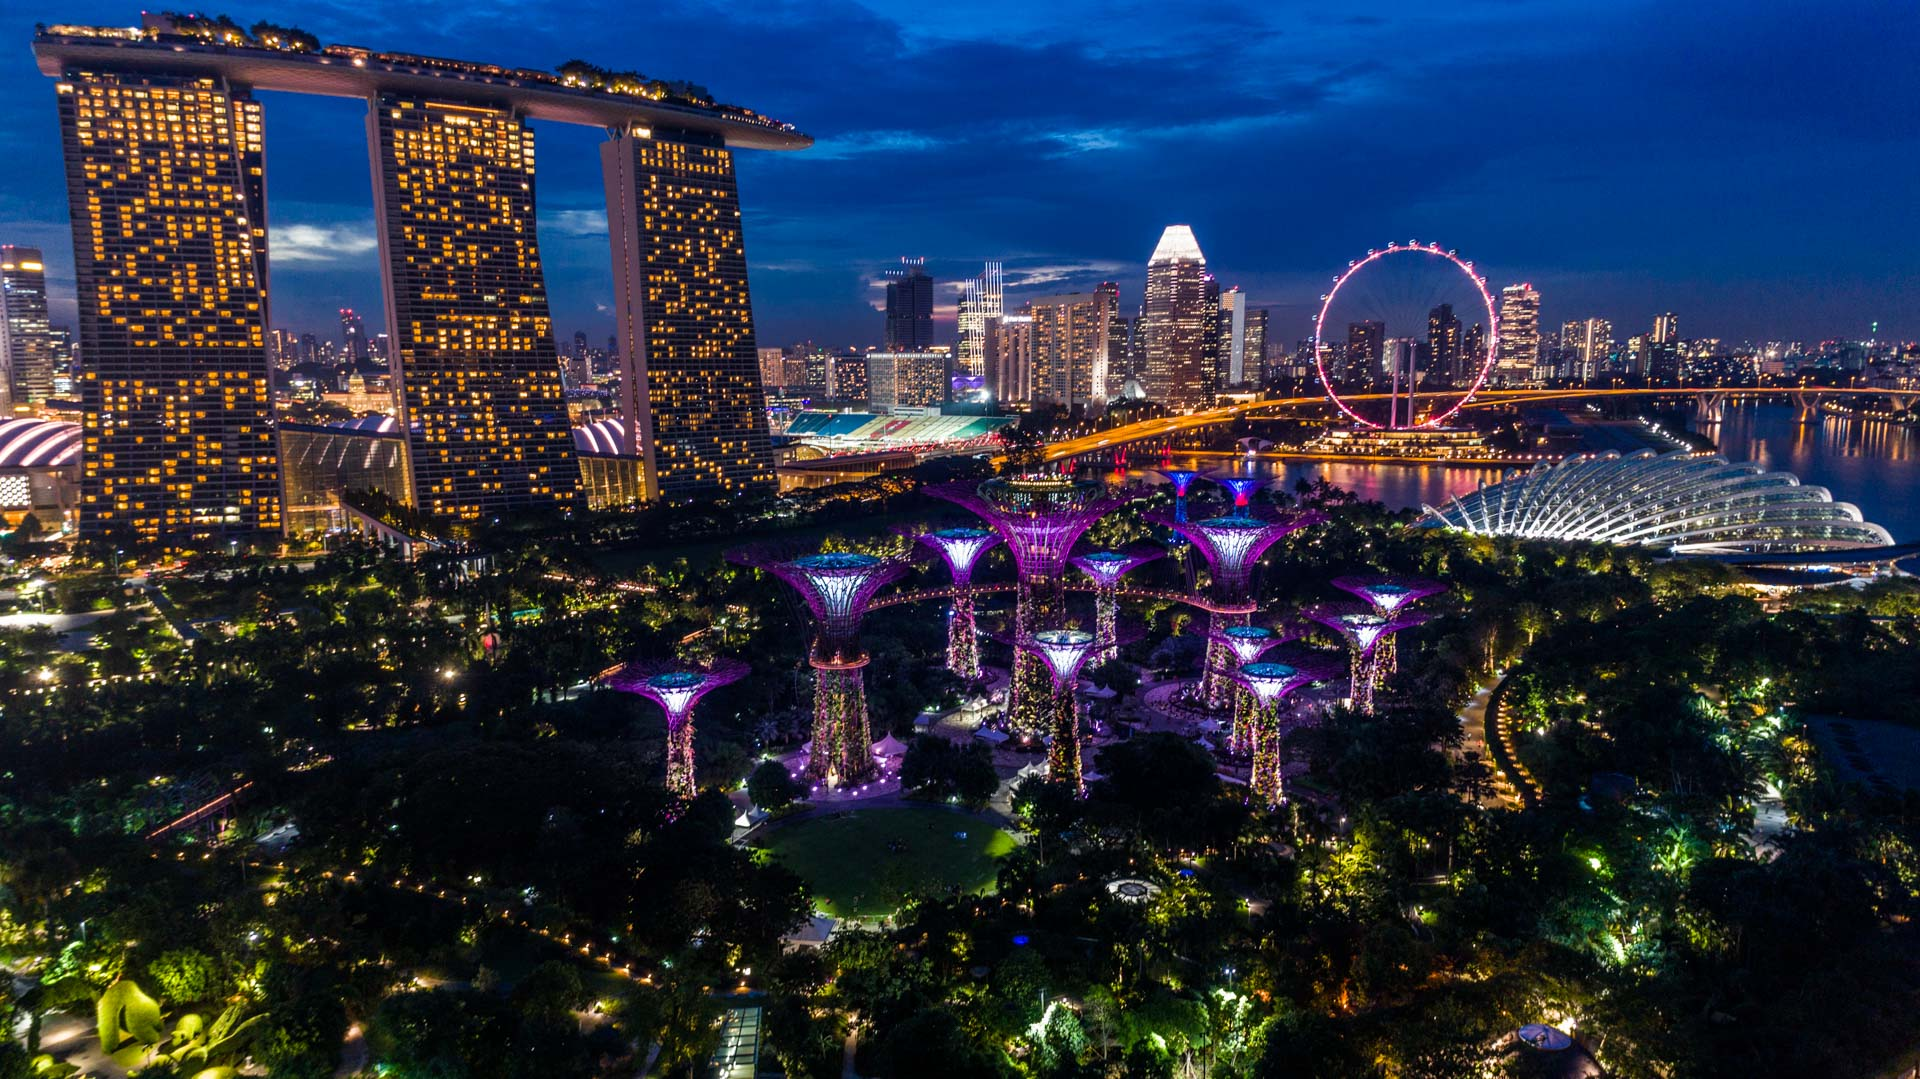 Singapore Pescart Enrico Pescantini Gardens by the Bay Marina Bay Sands nightscape drone 3